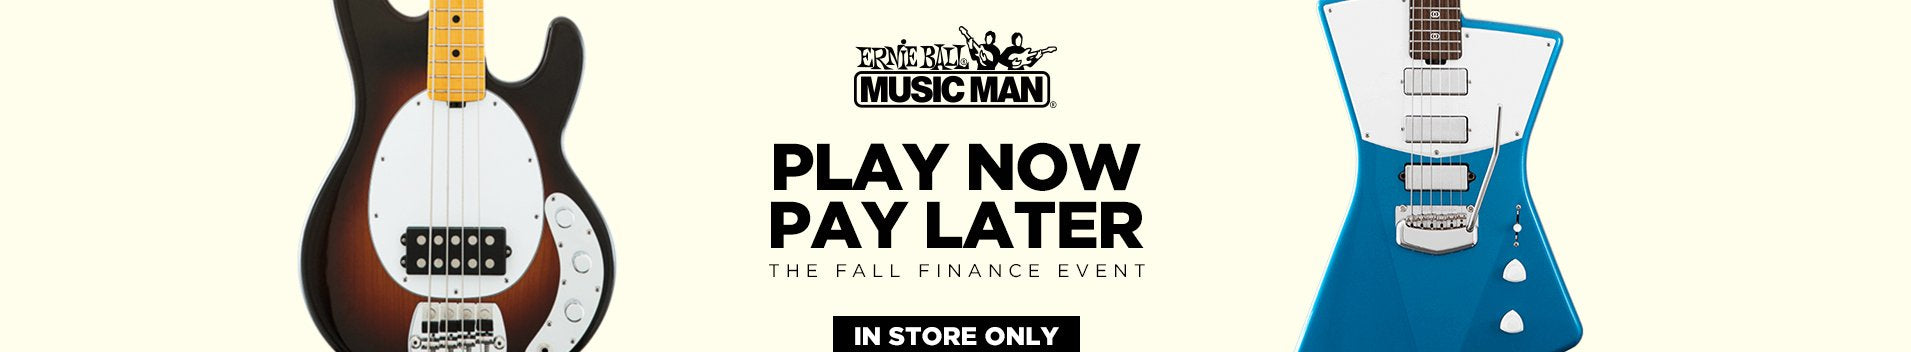 Replay Guitar Exchange Ernie Ball Finance Event